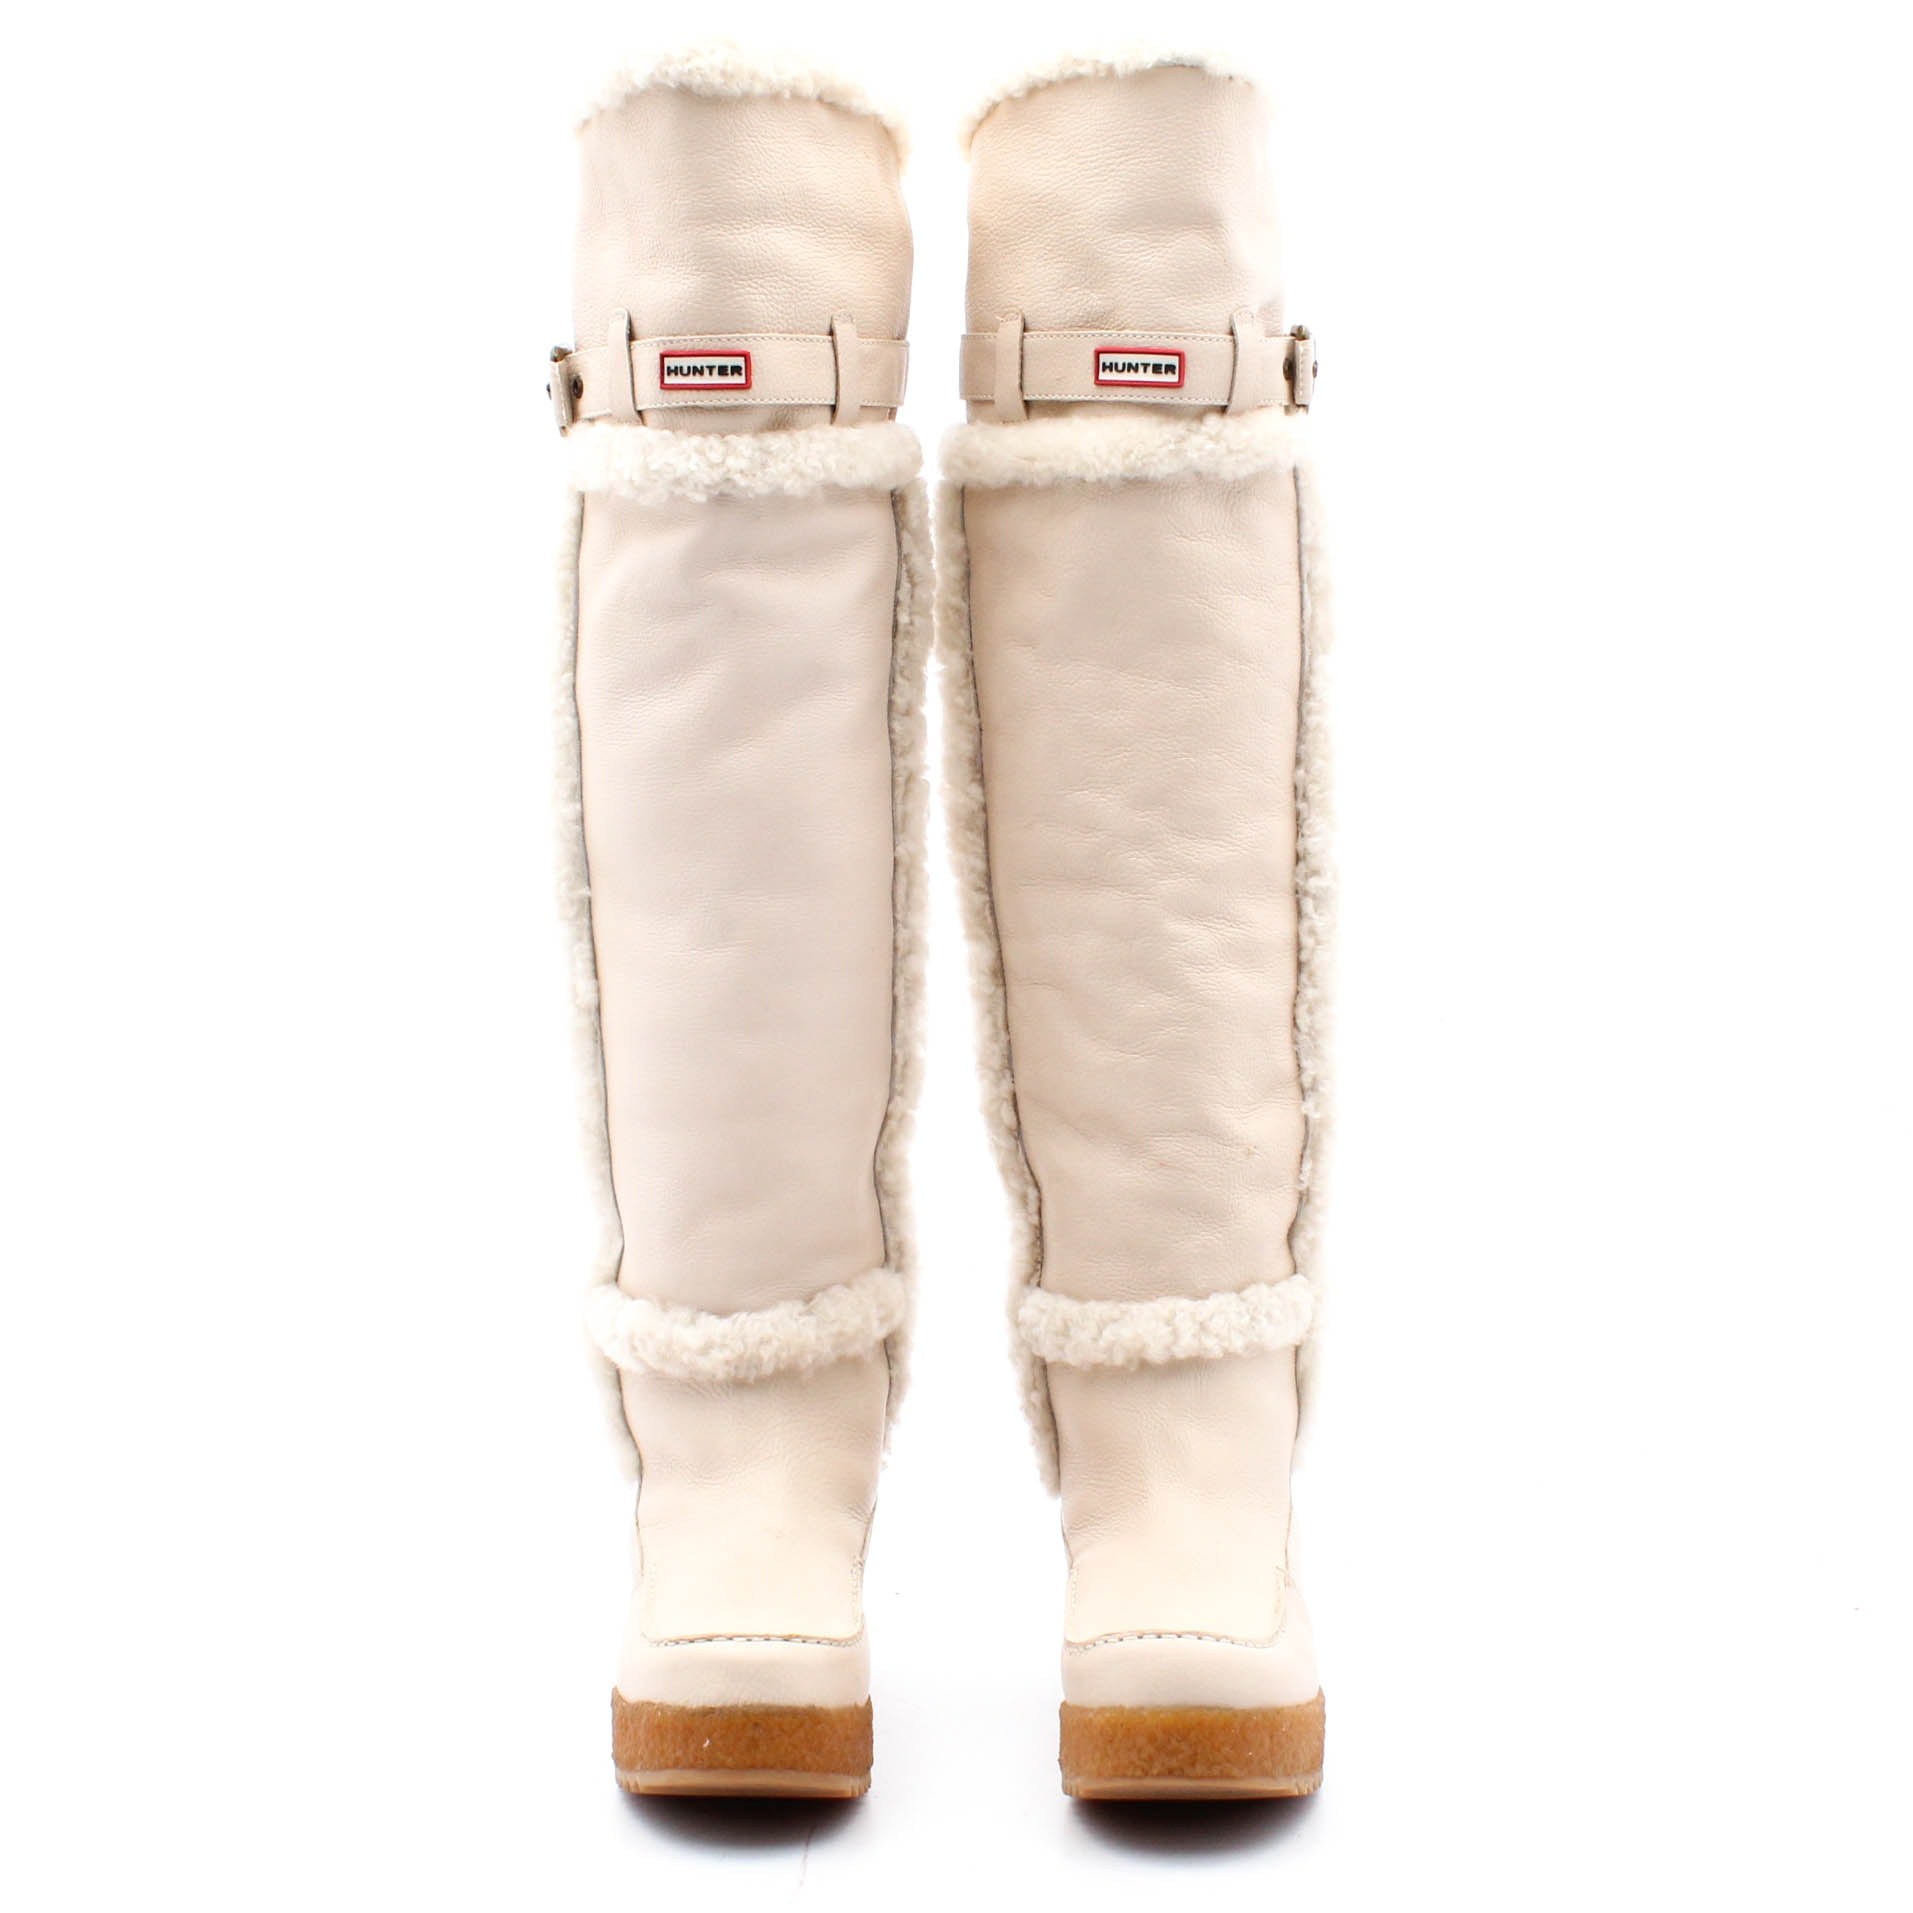 Hunter Shearling Lined Cream Leather Over-the-Knee Platform Boots